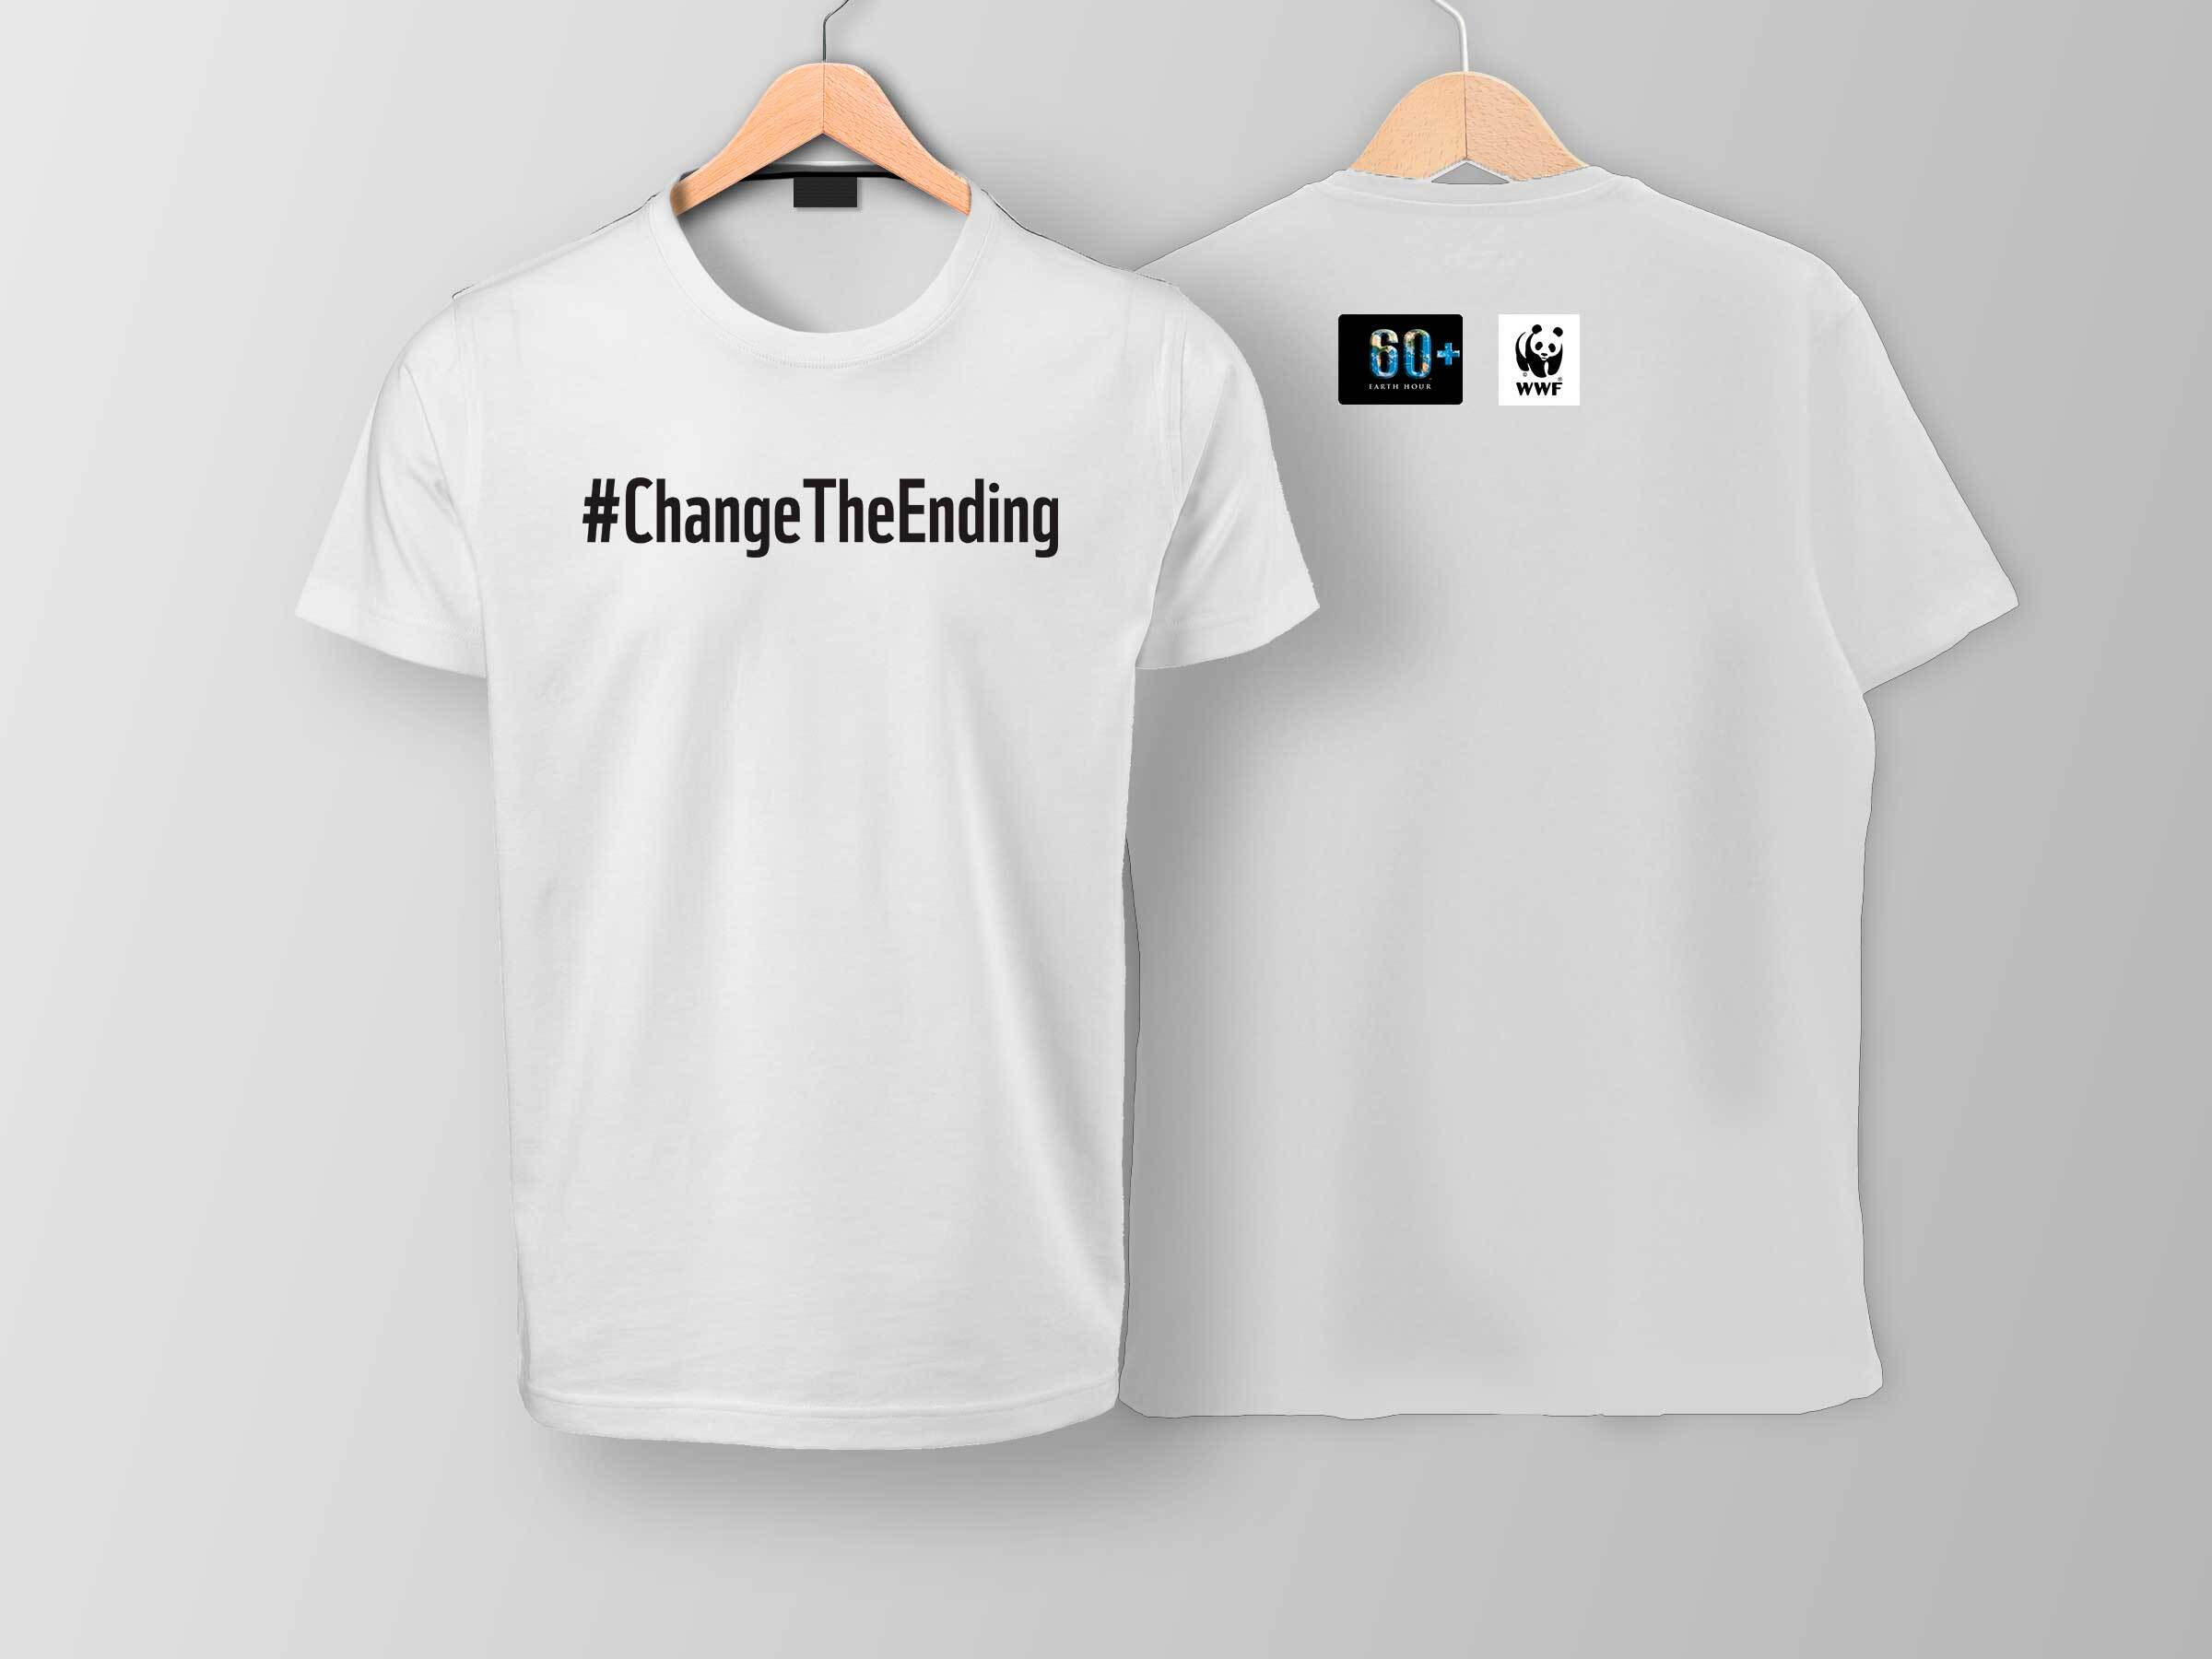 1EH2020-Shirt-Hashtag-Mockup-on-White